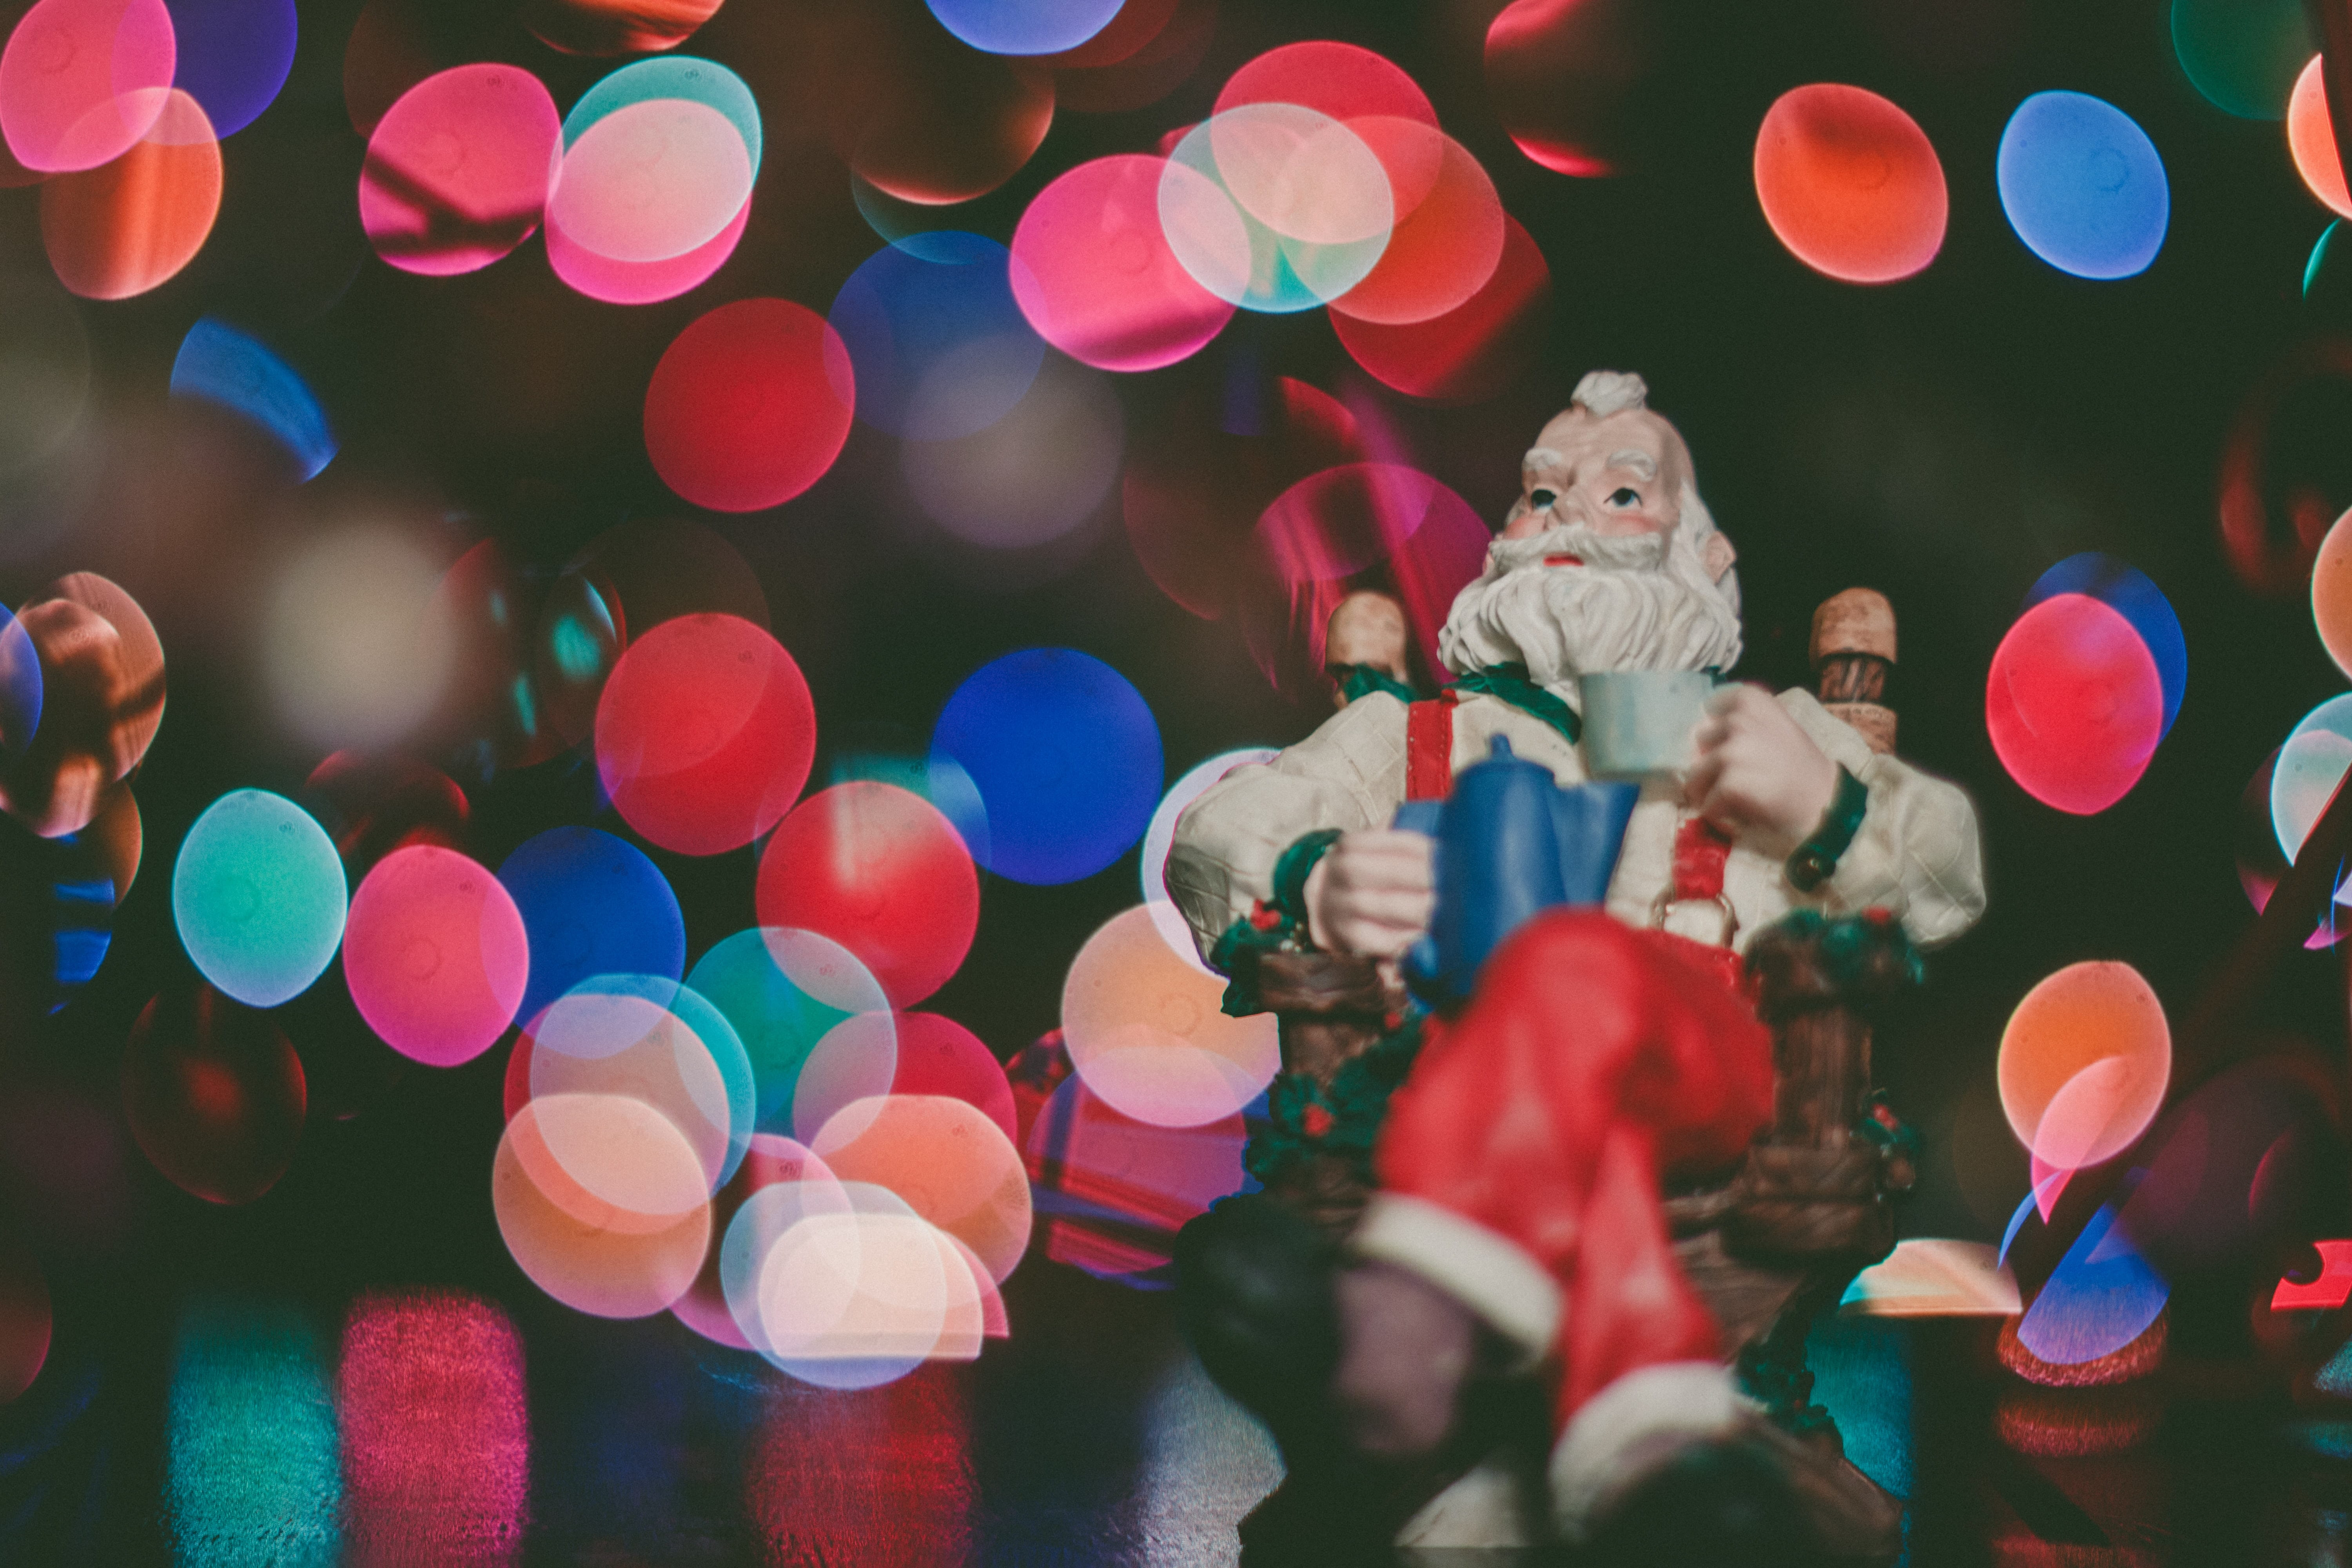 Ornament of Santa with a bokeh background